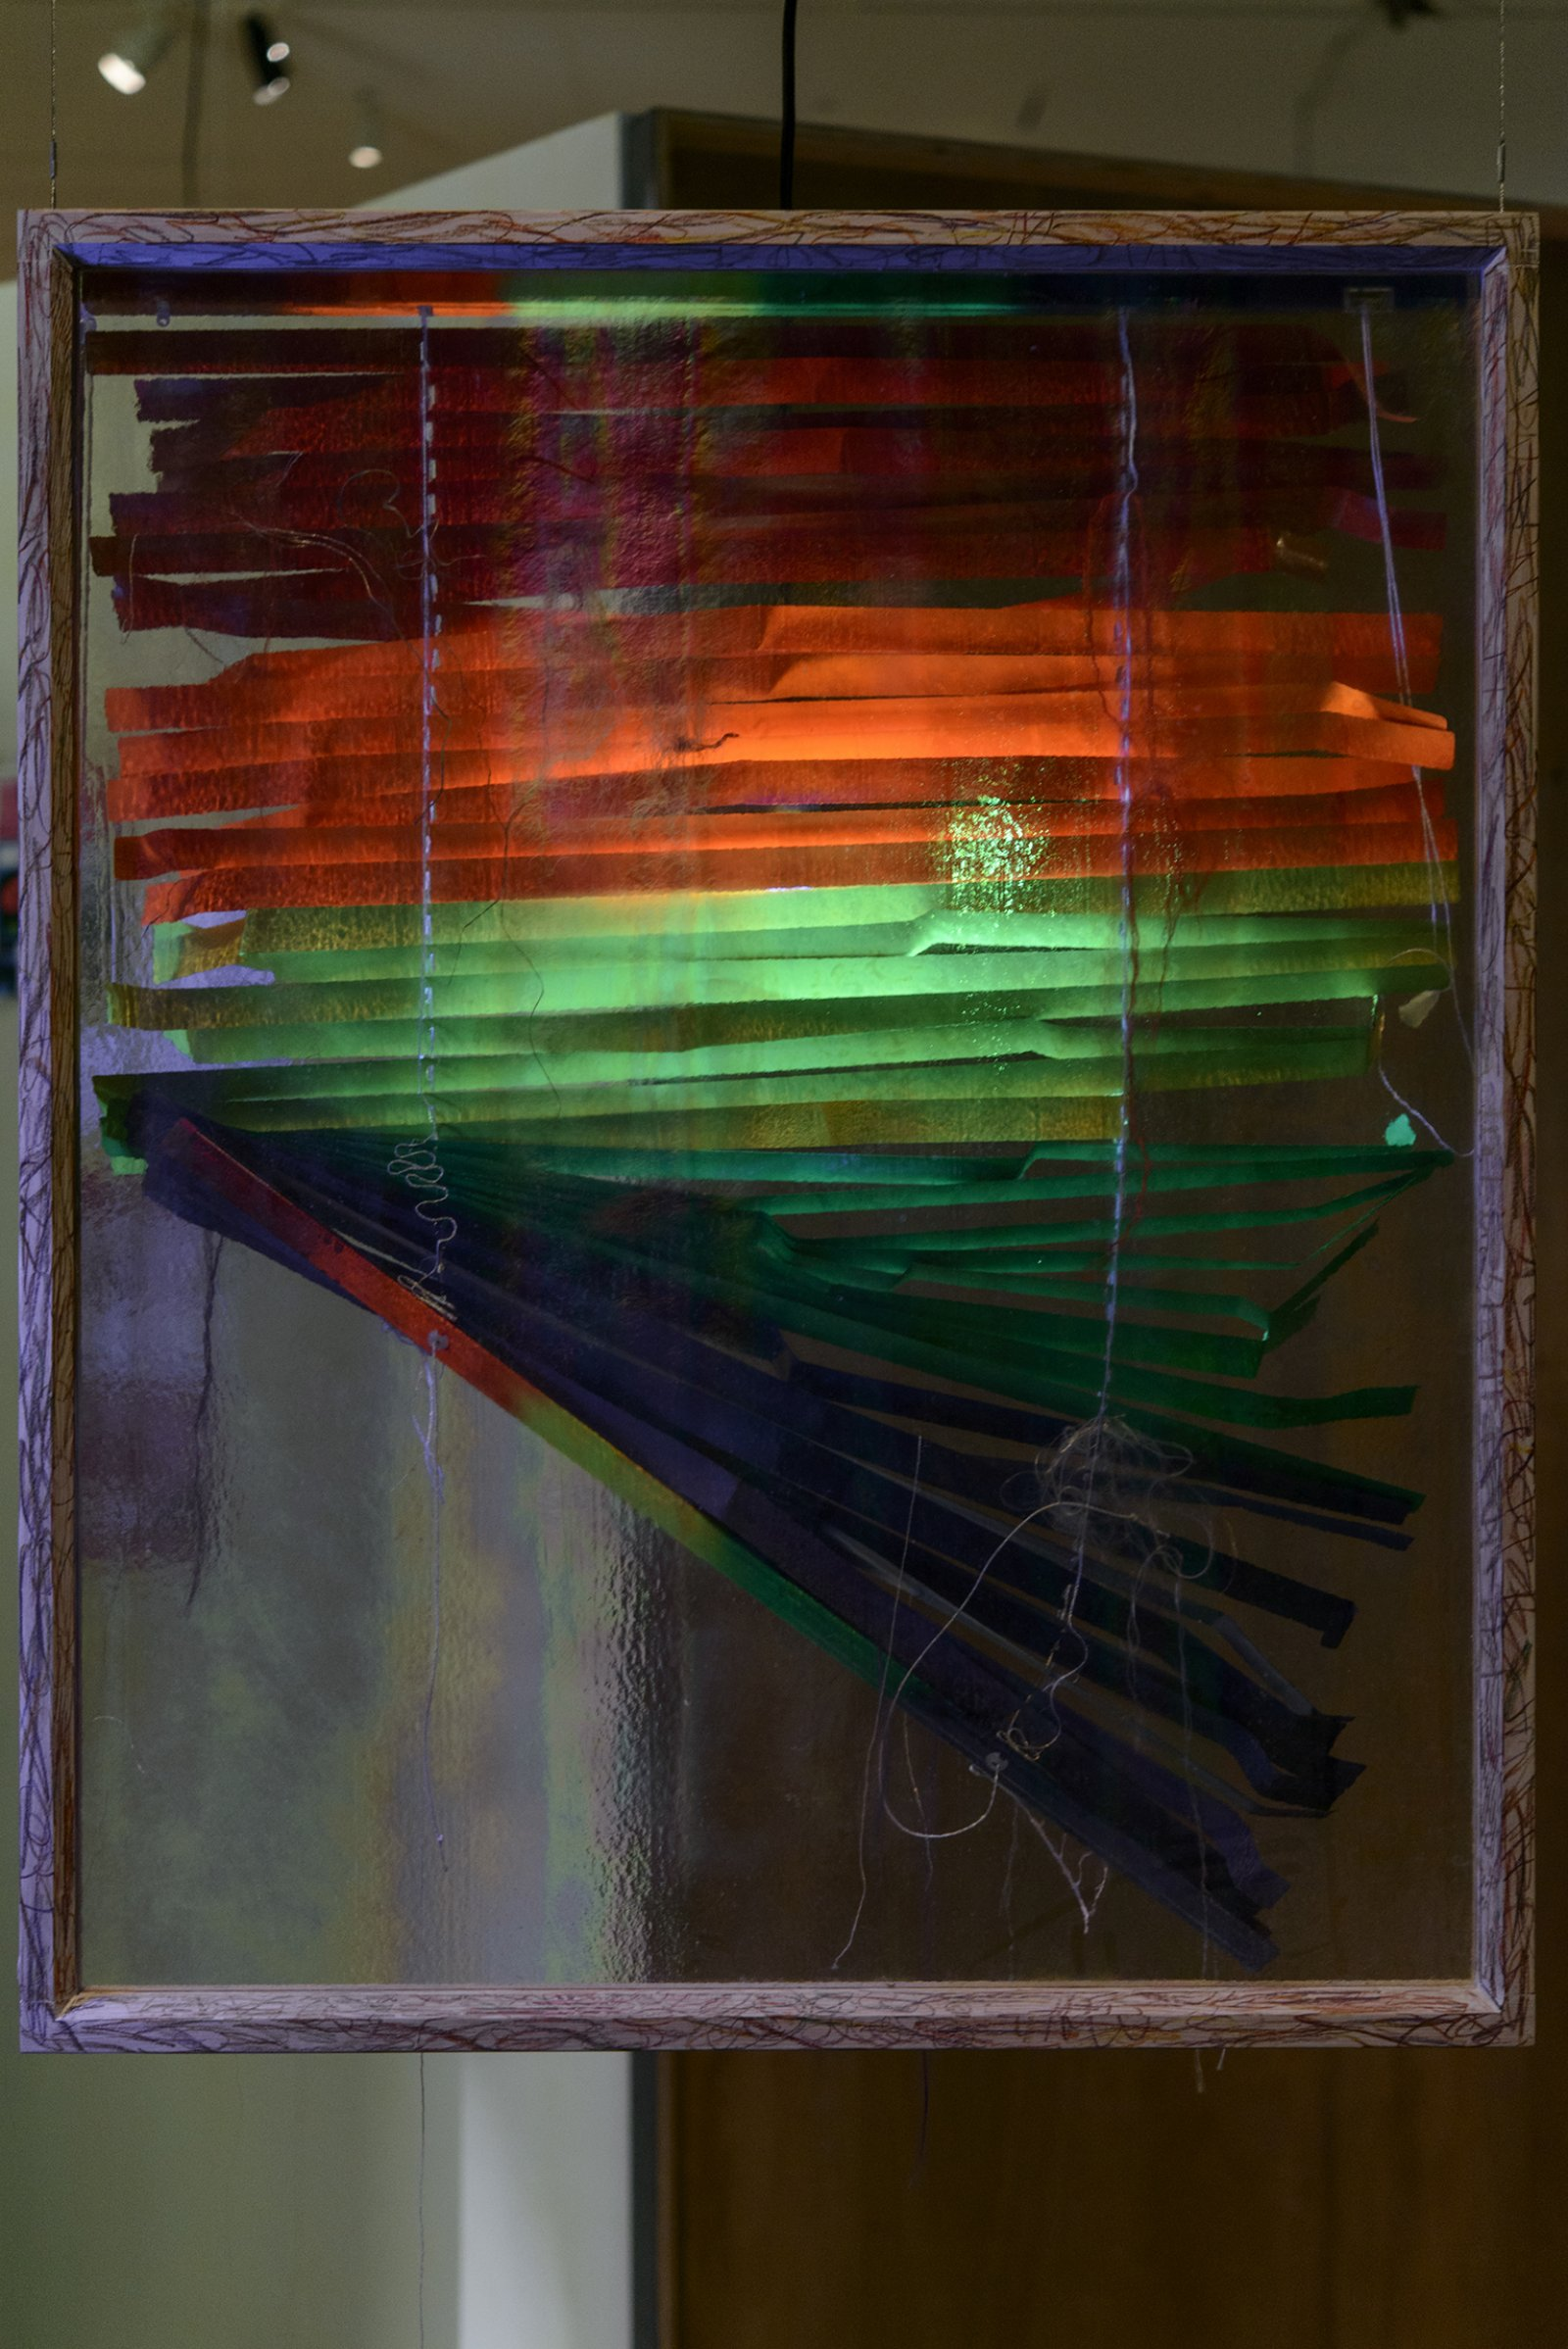 Julia Feyrer,Blinded/Braided, 2013, venetian blind, human hair, corn hair, wig hair, milk wash wood frame with rainbow crayon, dimensions variable. Installation view,The Intellection of Lady Spider House, Art Gallery of Alberta, 2013.